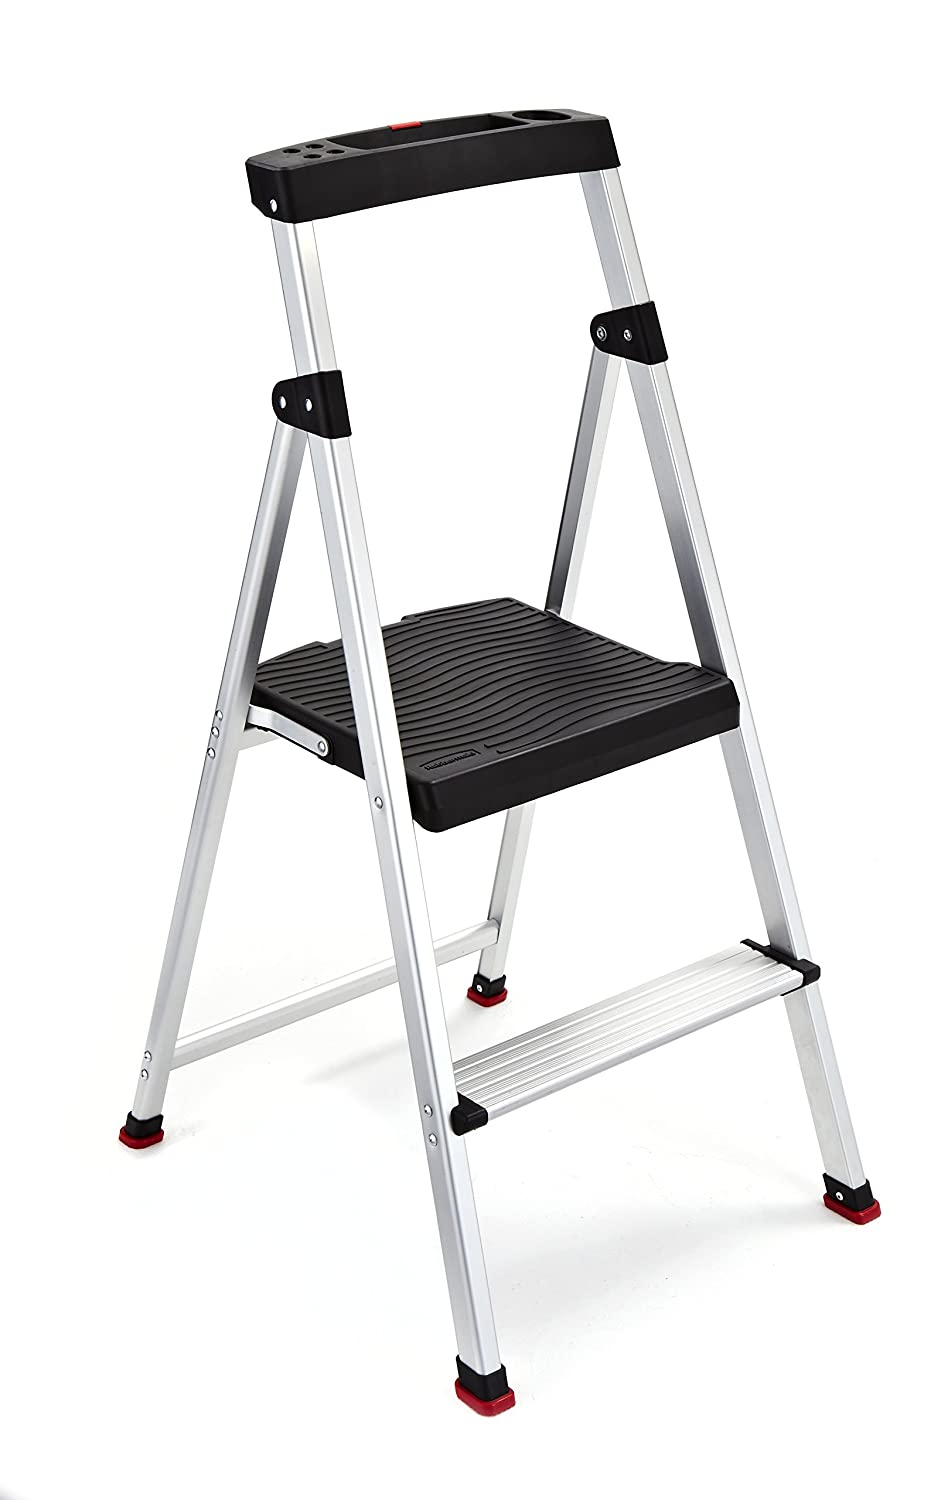 project with improvement com dp stool top rma aluminum home rubbermaid amazon lightweight step